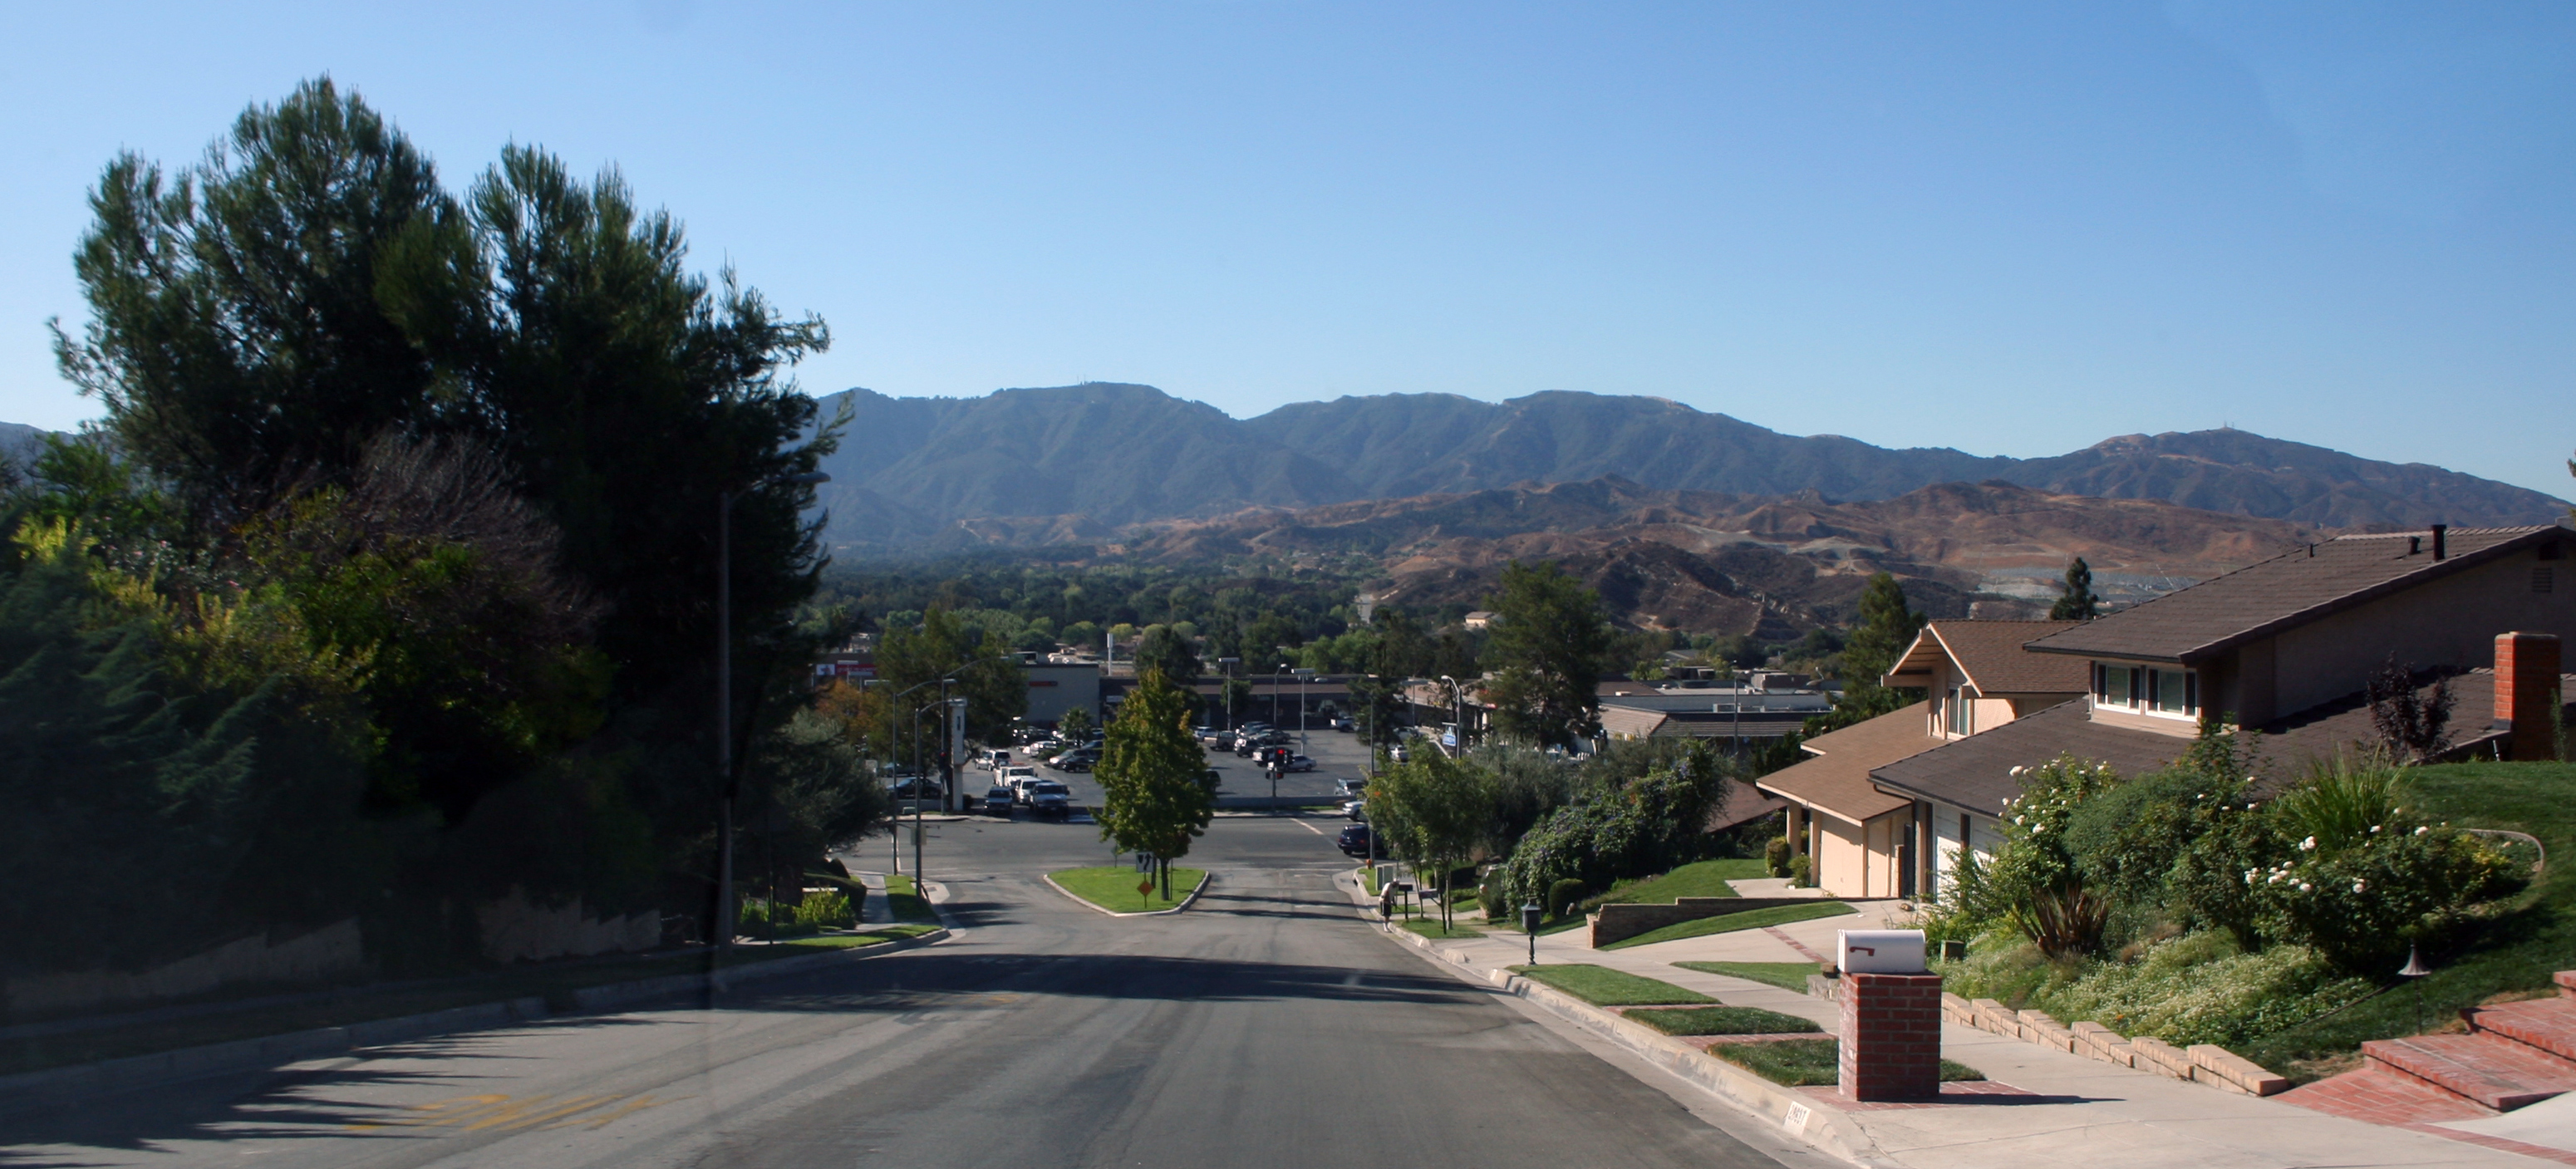 santa clarita Discover hotels in santa clarita, things to do & where to stay our hotels are near the very best santa clarita attractions, family-friendly activities, & restaurants.